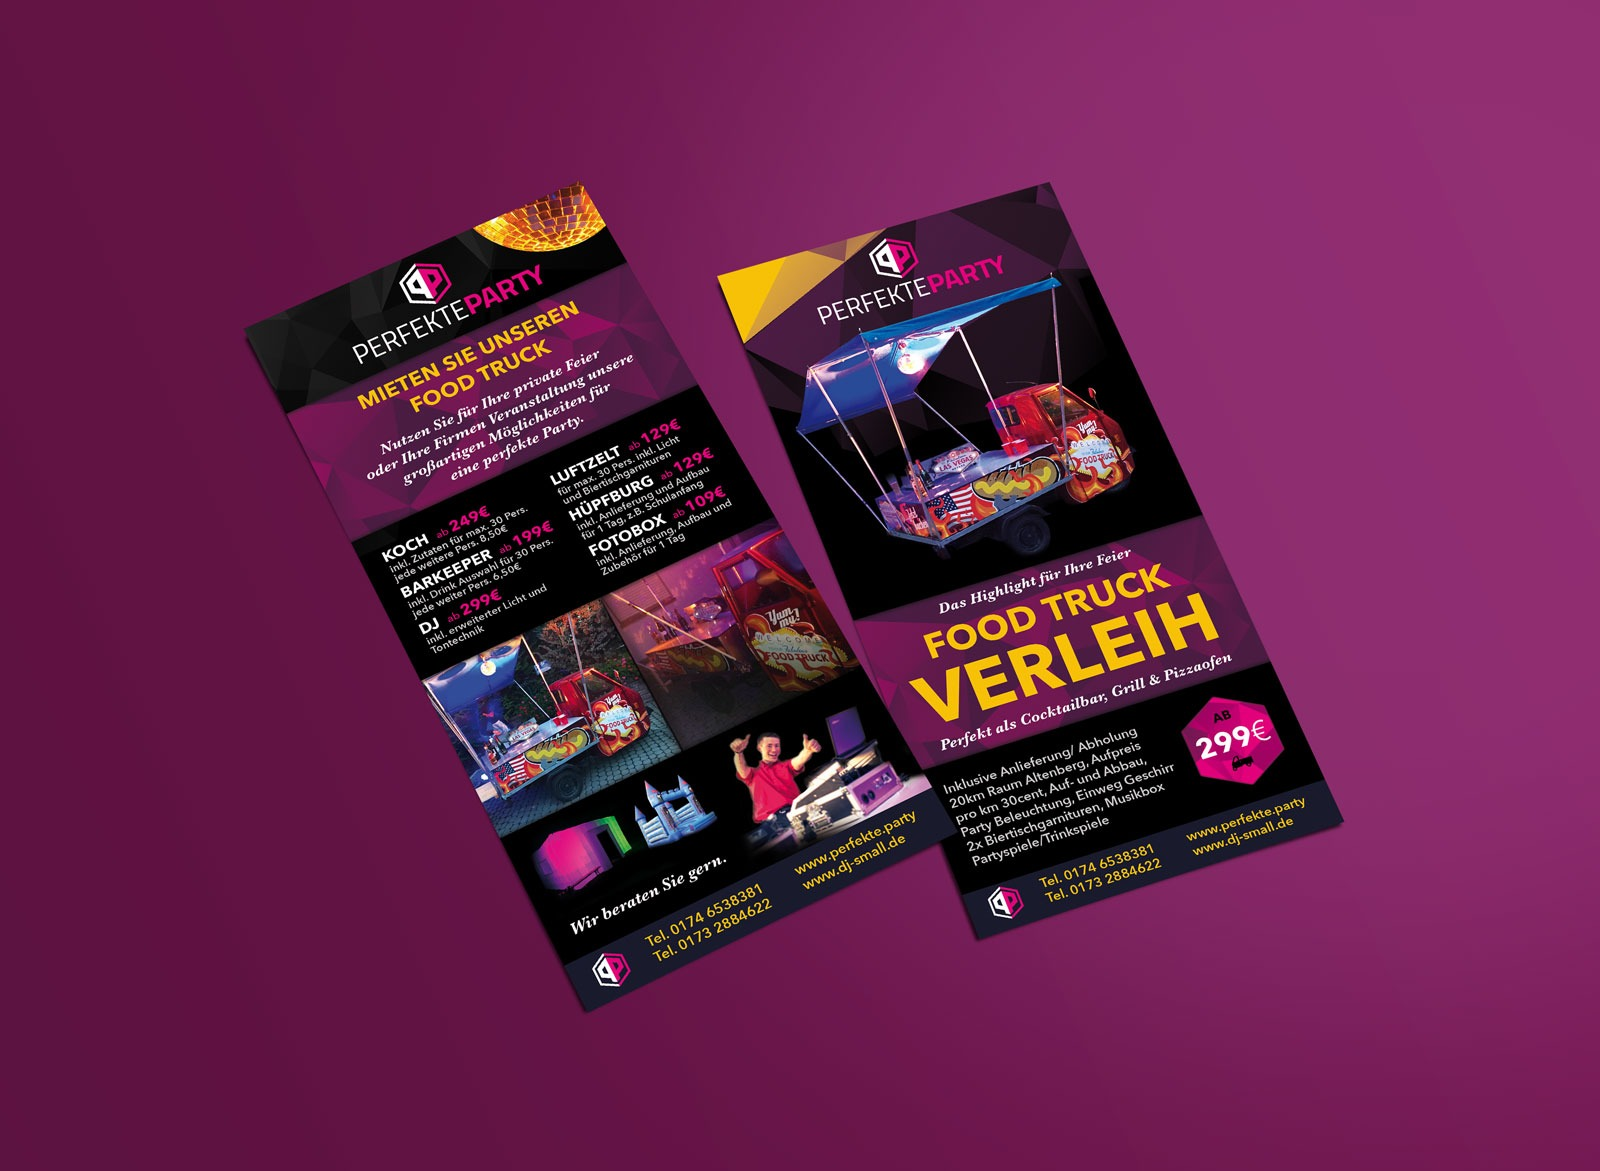 Flyer Design für Perfekte Party